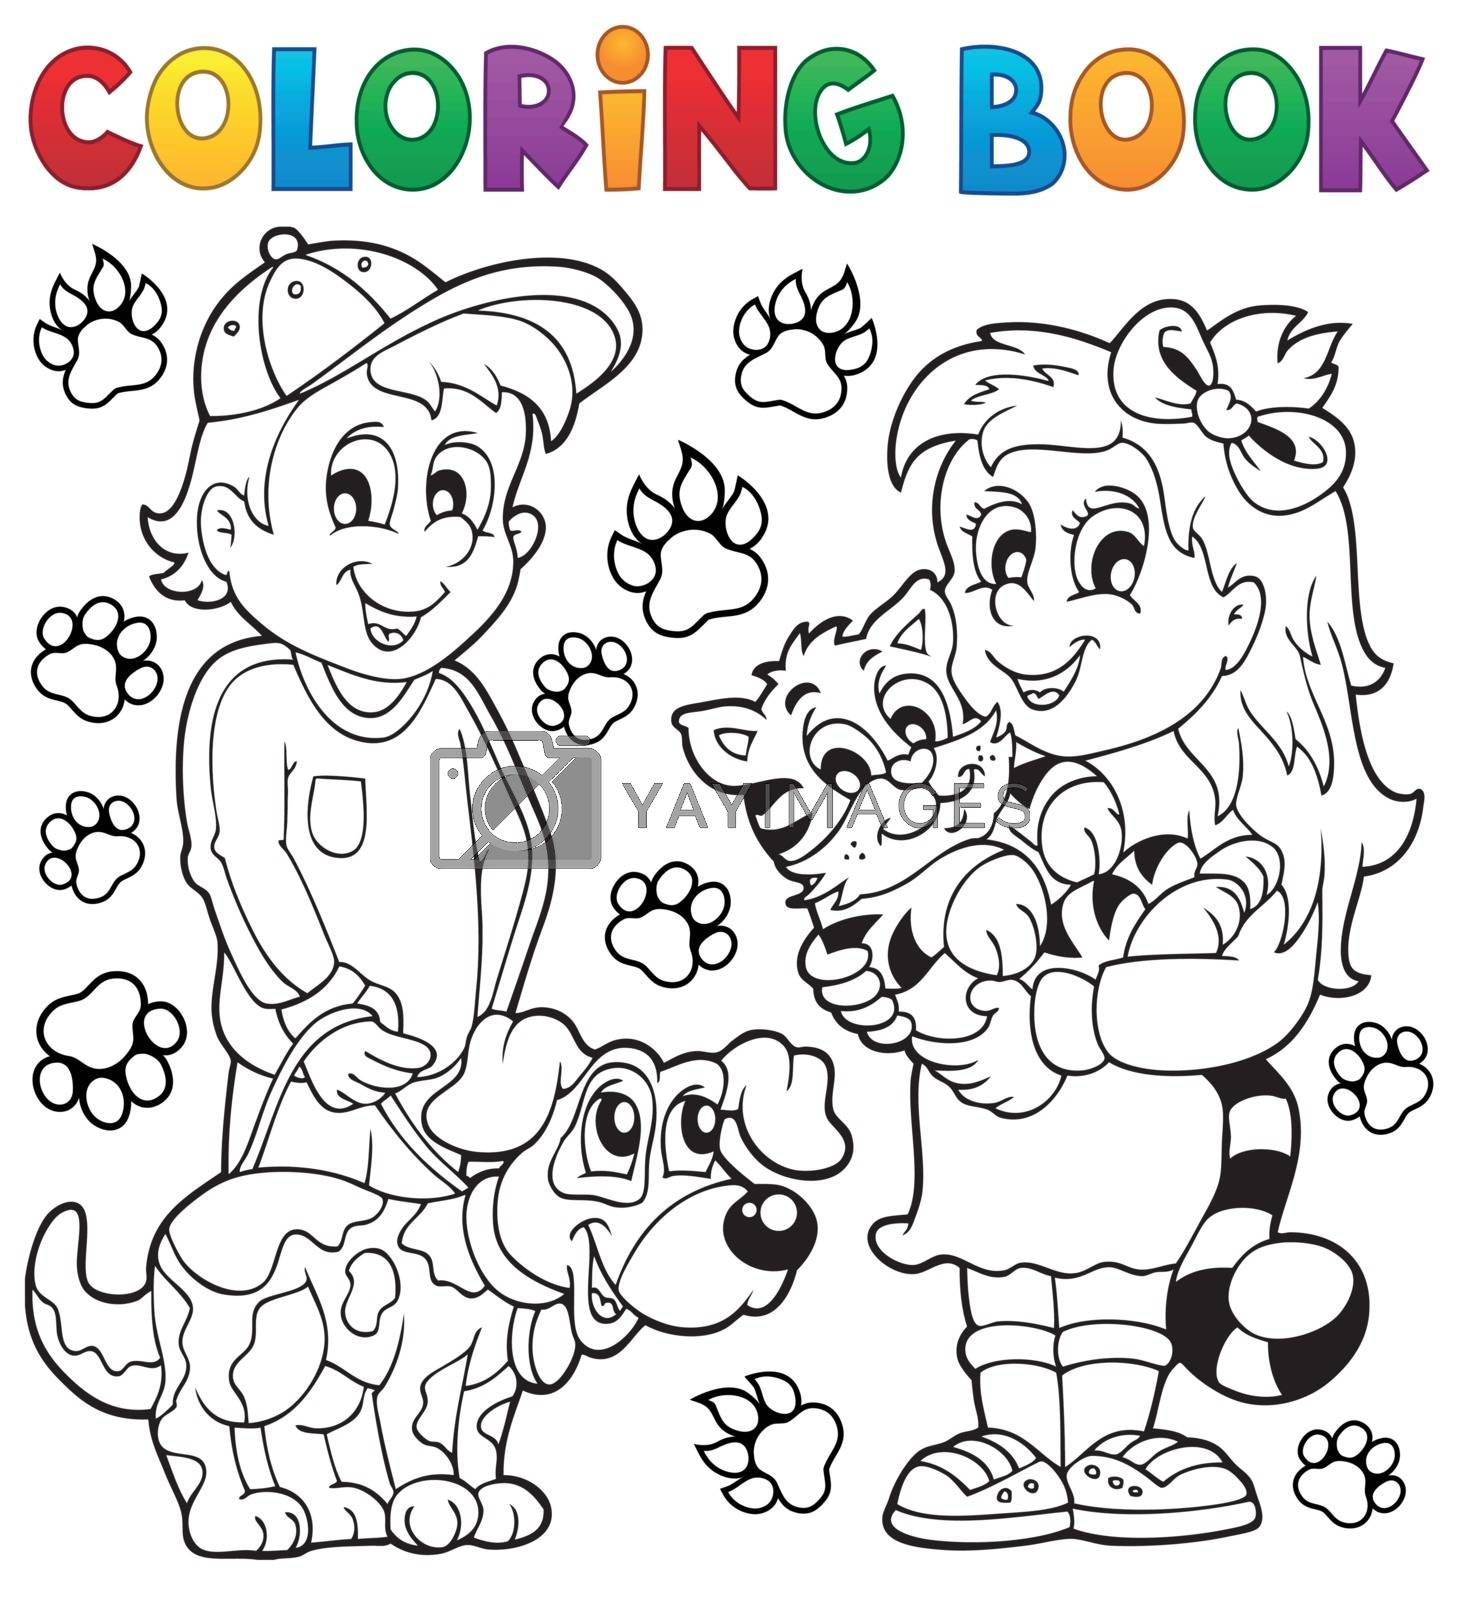 Coloring book children with pets - eps10 vector illustration.